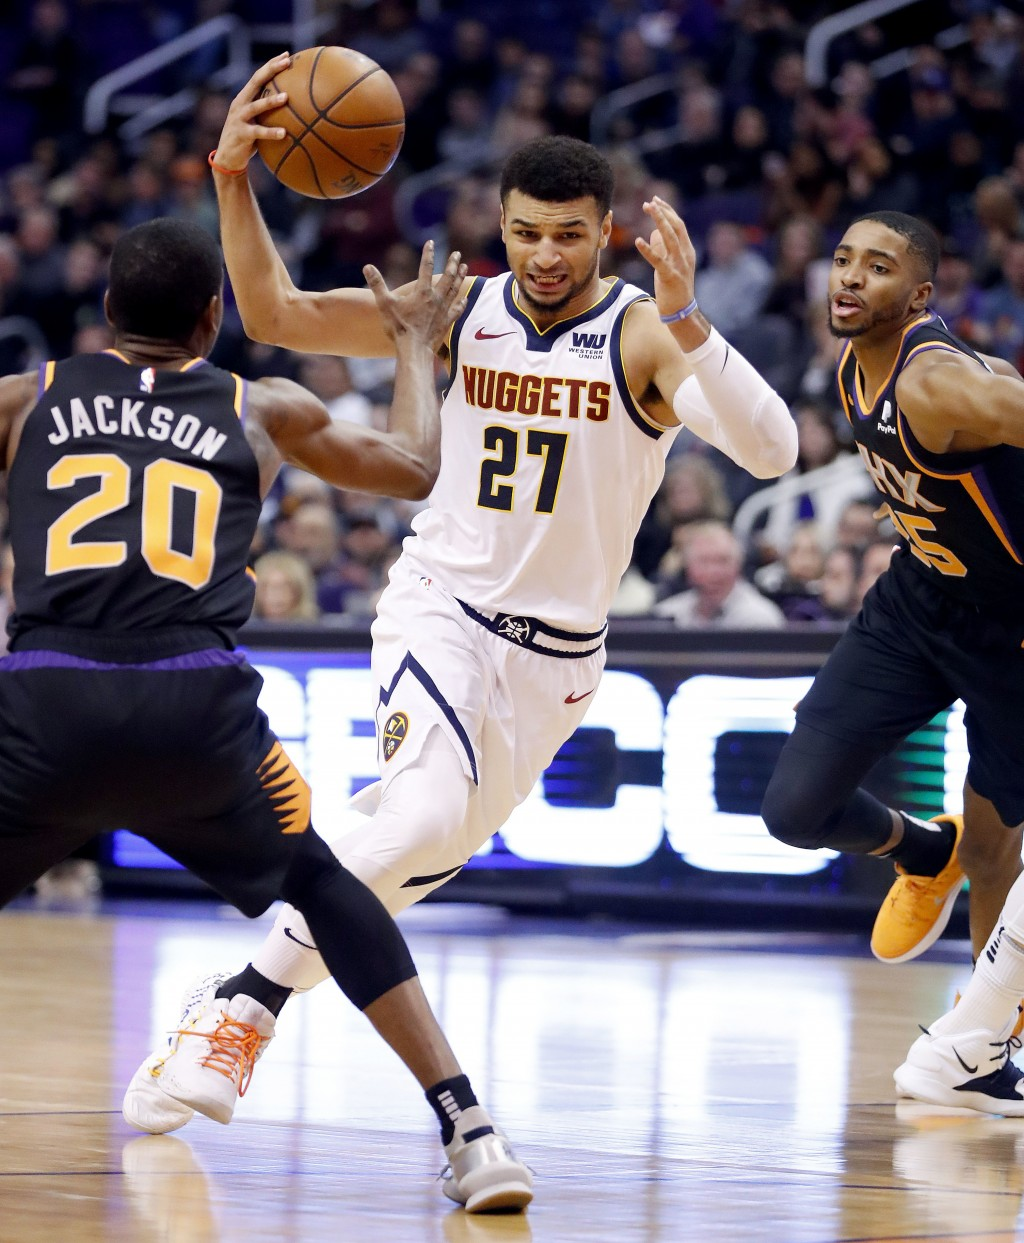 Denver Nuggets guard Jamal Murray (27) drives against Phoenix Suns forward Josh Jackson (20) during the first half of an NBA basketball game, Saturday...